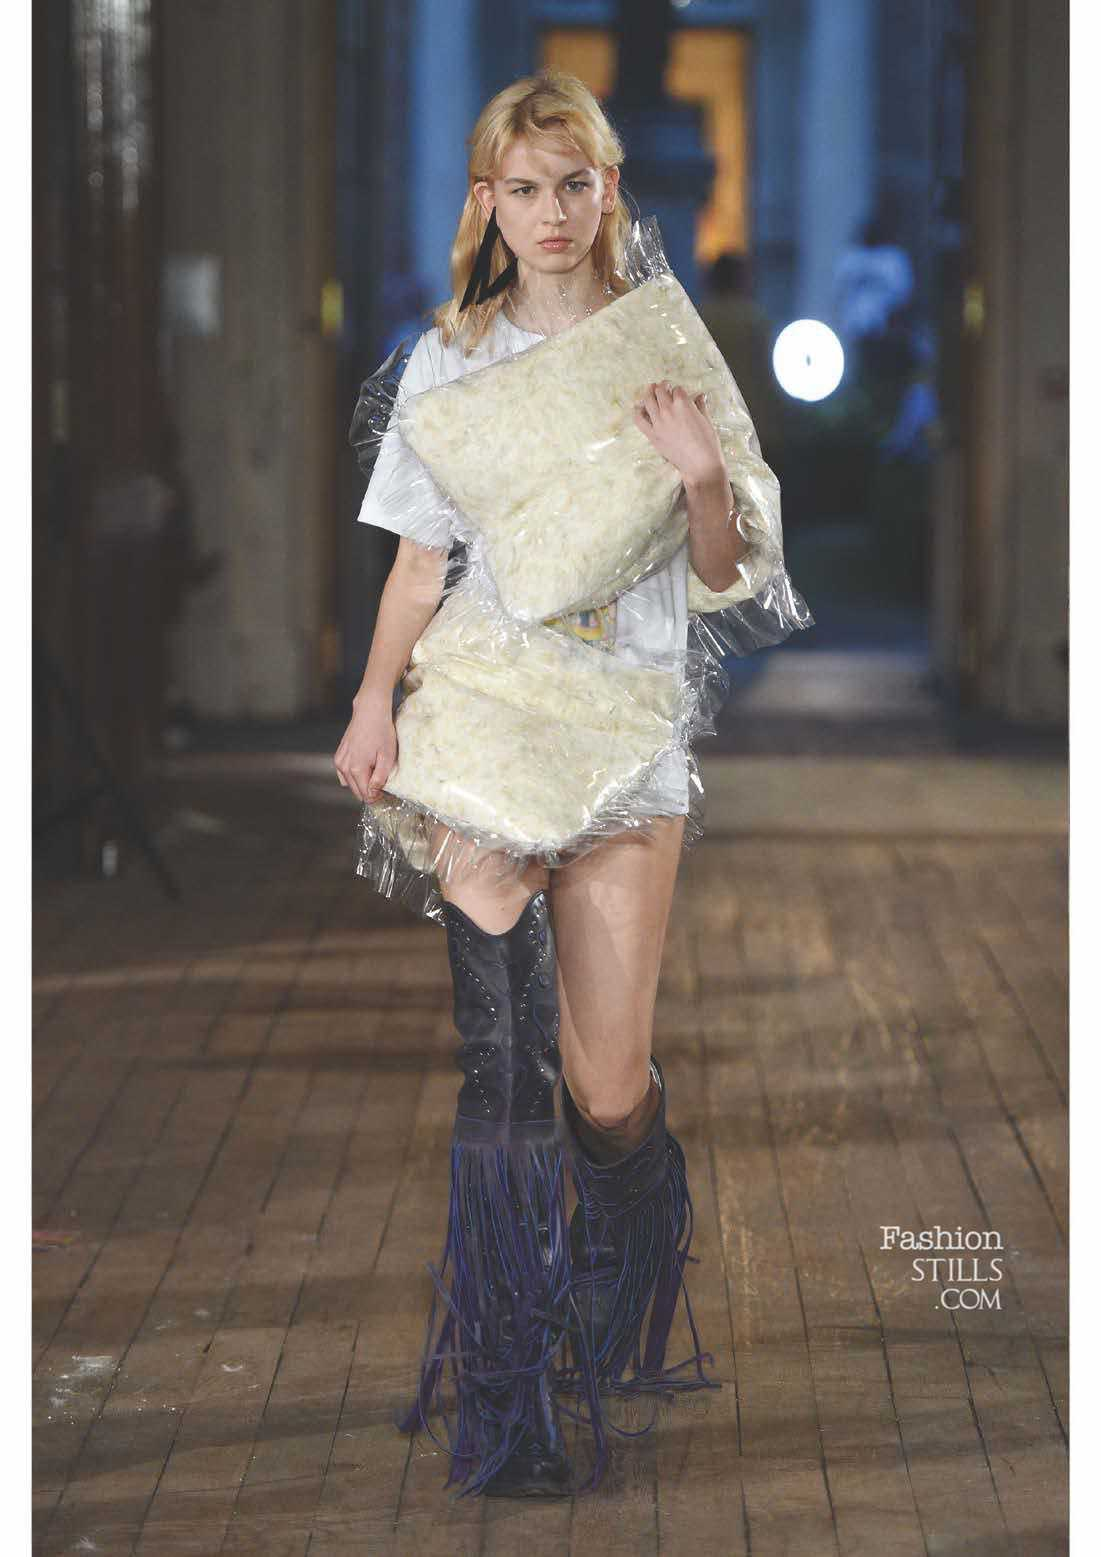 Neith Nyer_1513681565_14_look-book-_-press-release-ss18-neith-nyer-028.jpg